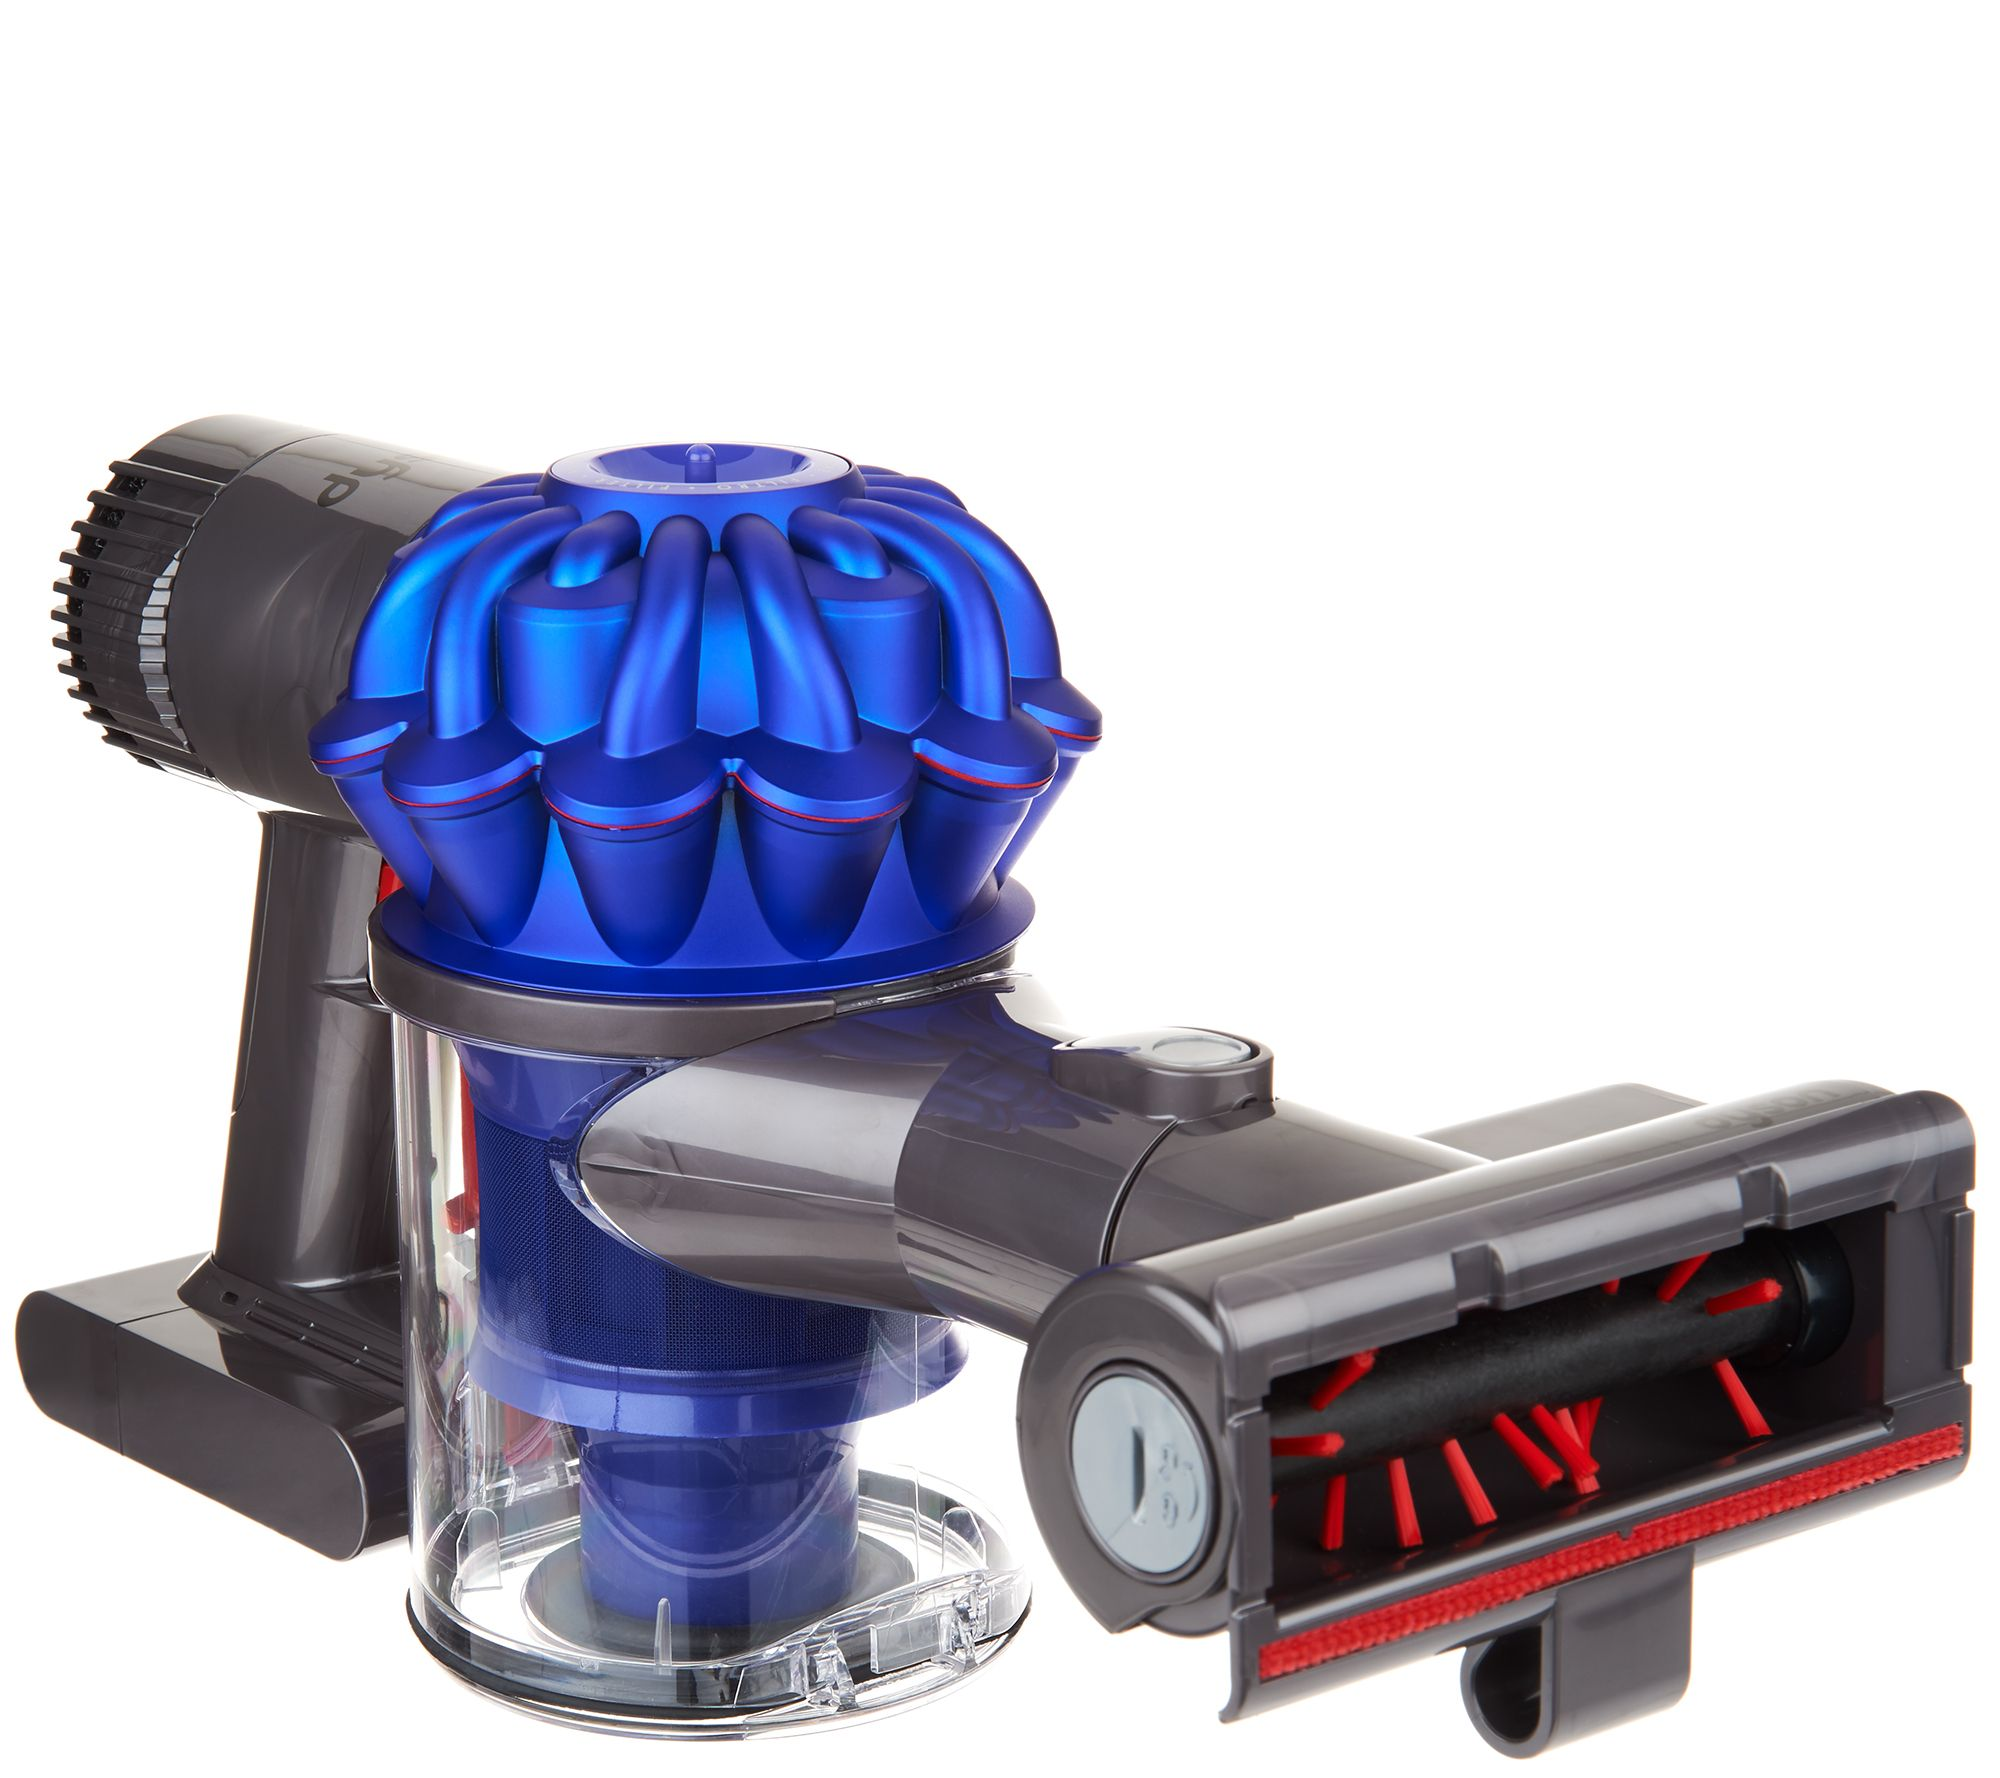 Image of: Grooming Dyson V6 Trigger Animal Handheld Vacuum With Tool Attachments Back To Video Qvccom Dyson V6 Trigger Animal Handheld Vacuum With Tool Attachments